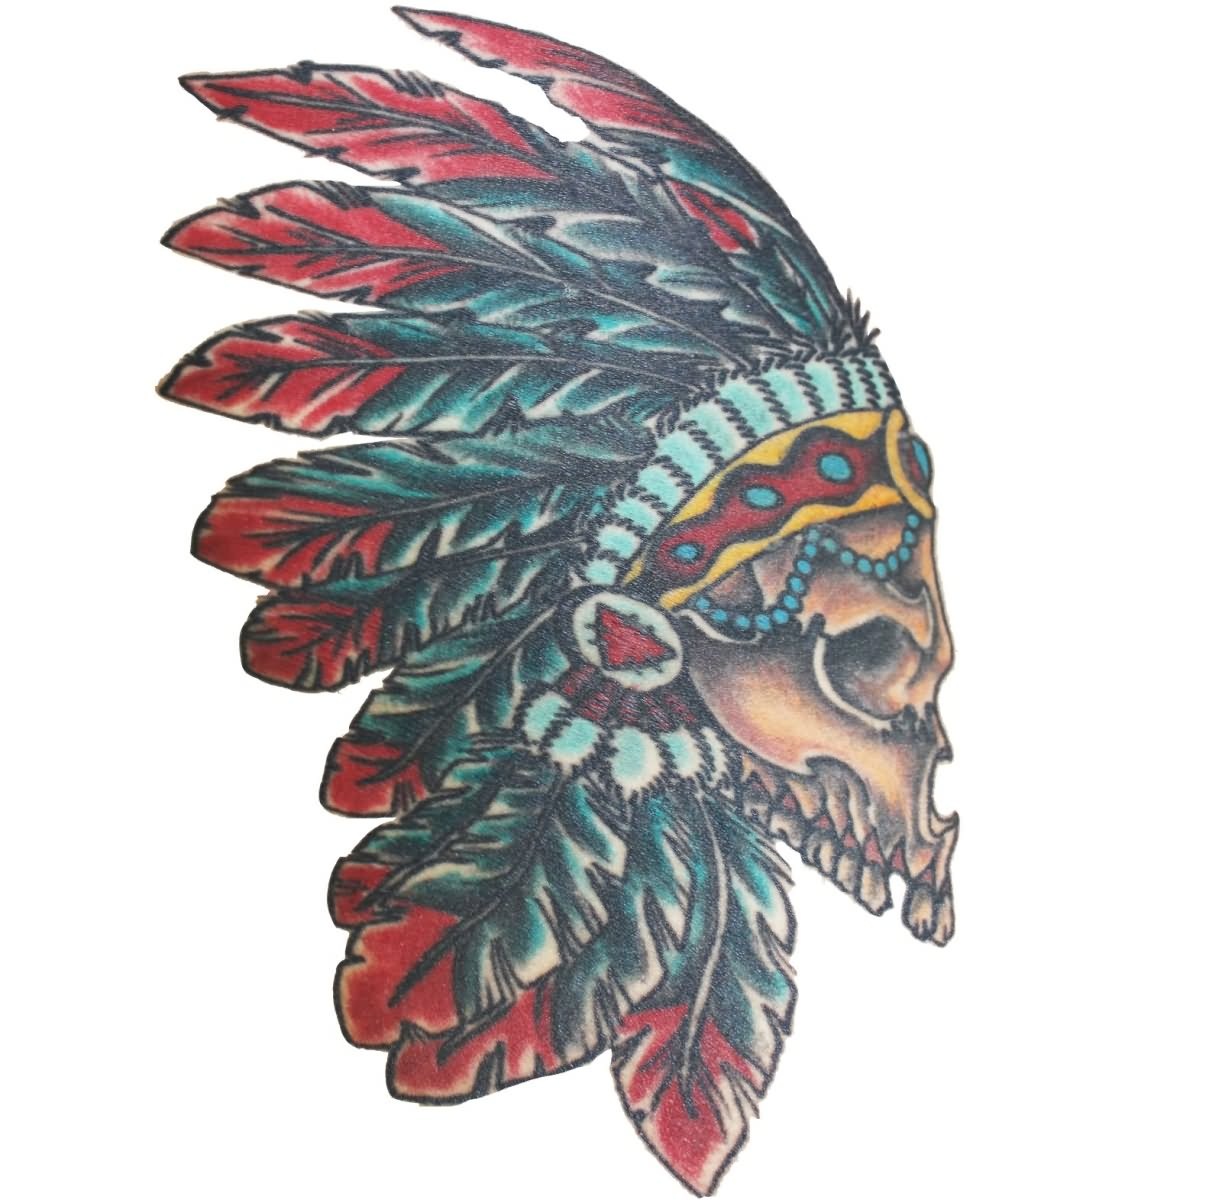 44 Indian Chief Skull Head Tattoos